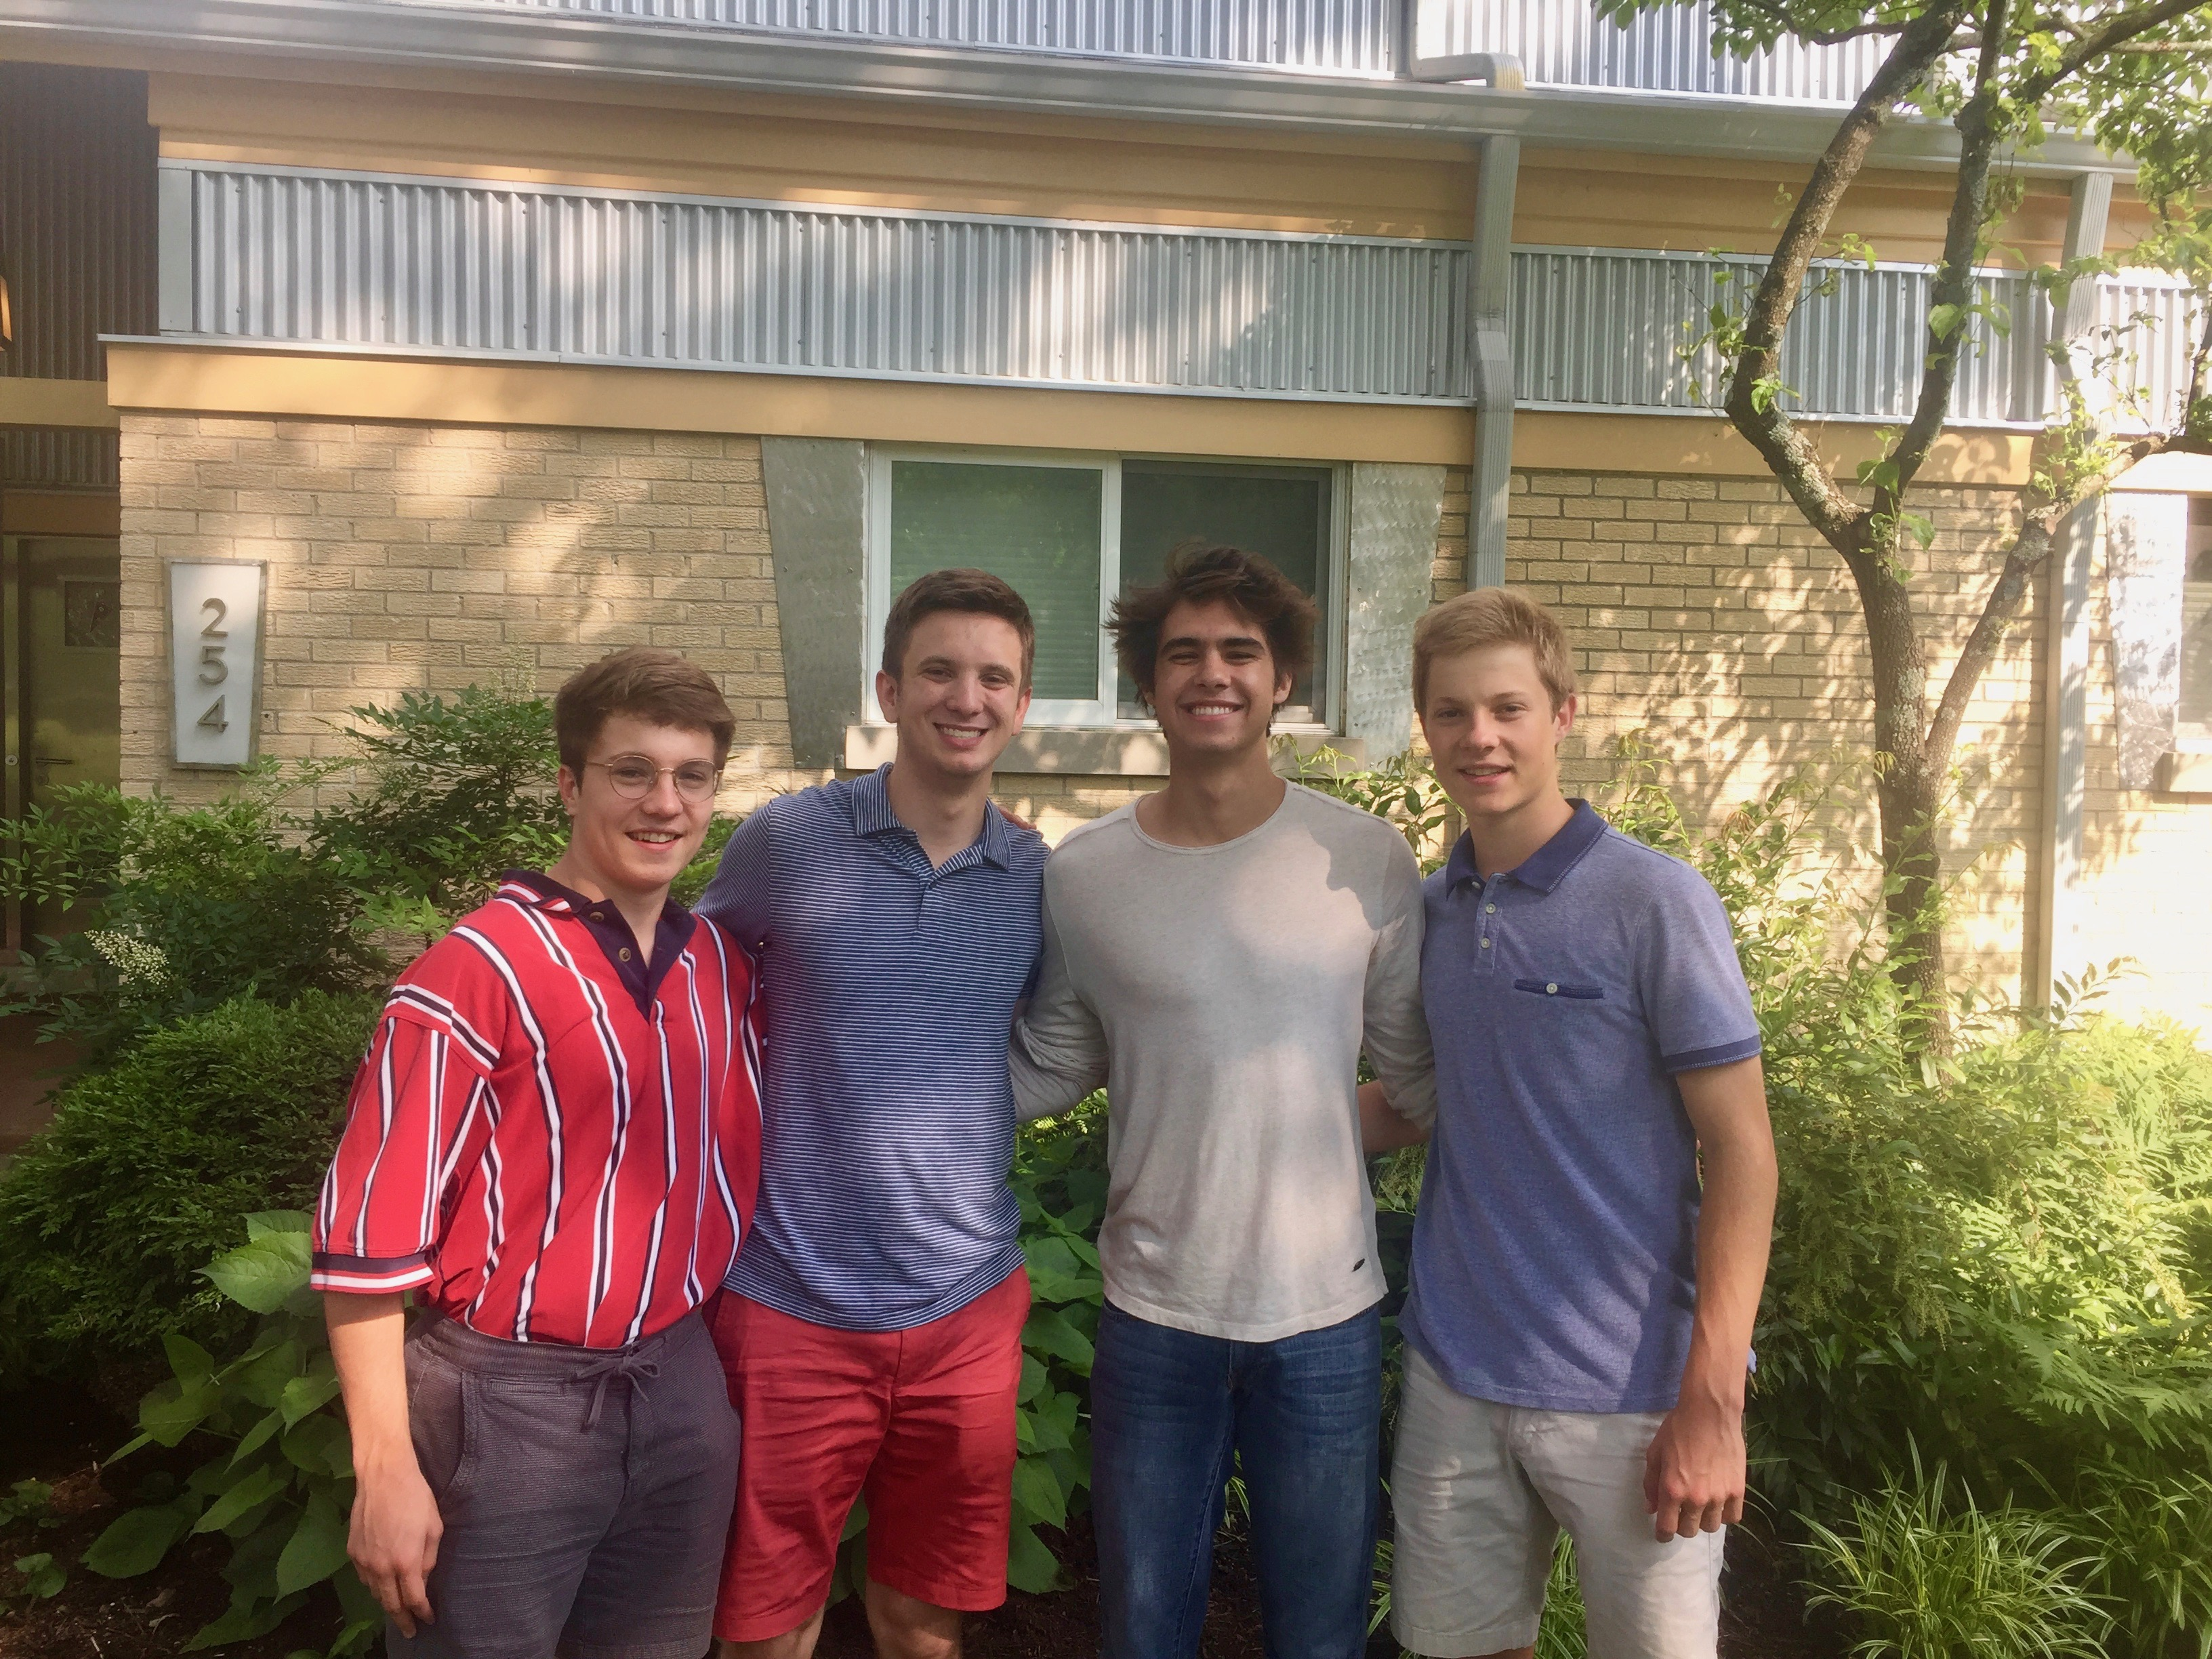 FOUR VALEDICTORIANS from The Lexington School class of 2015